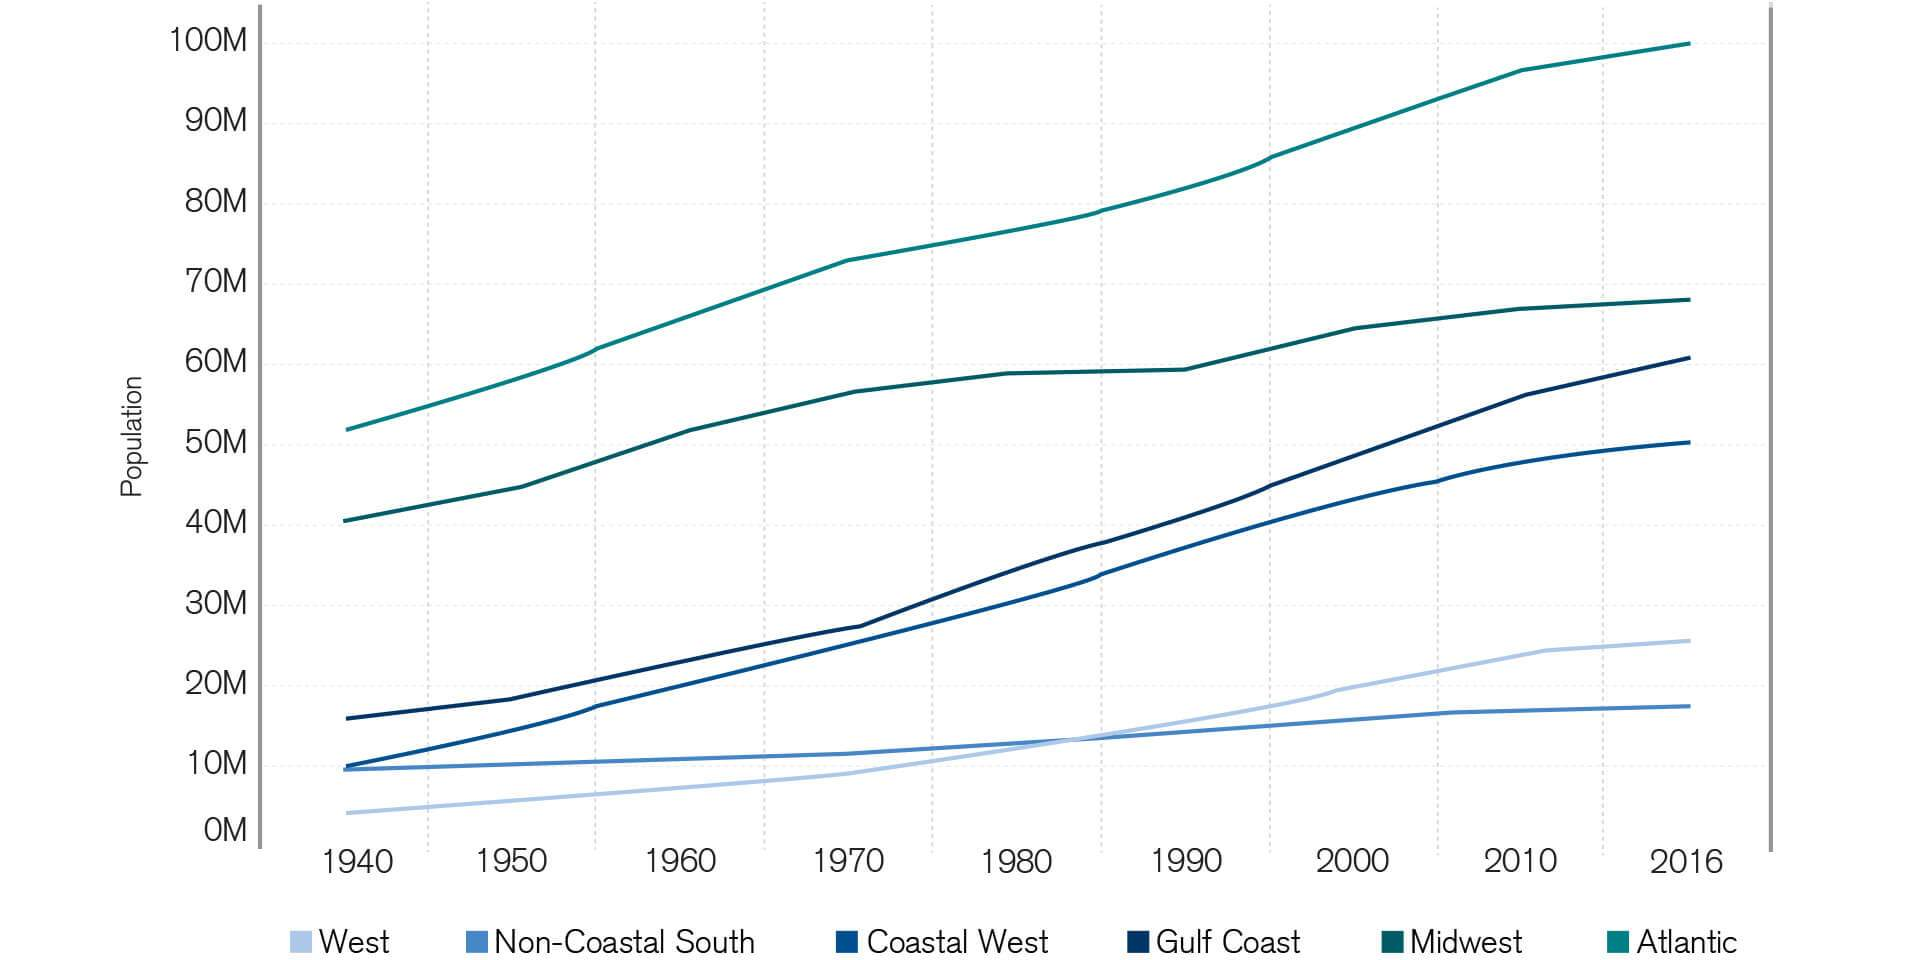 The chart shows US population growth in six regions from 1940 to 2016. The majority of the population growth is in coastal areas. For example, the population of Florida, the US state most at risk from Atlantic hurricanes, has grown from 2.8 million in 1950 to 21.3 million in 2018 – a 660% increase. The sharpest population increases are reflected in the Atlantic, Gulf Coast and Coastal West.